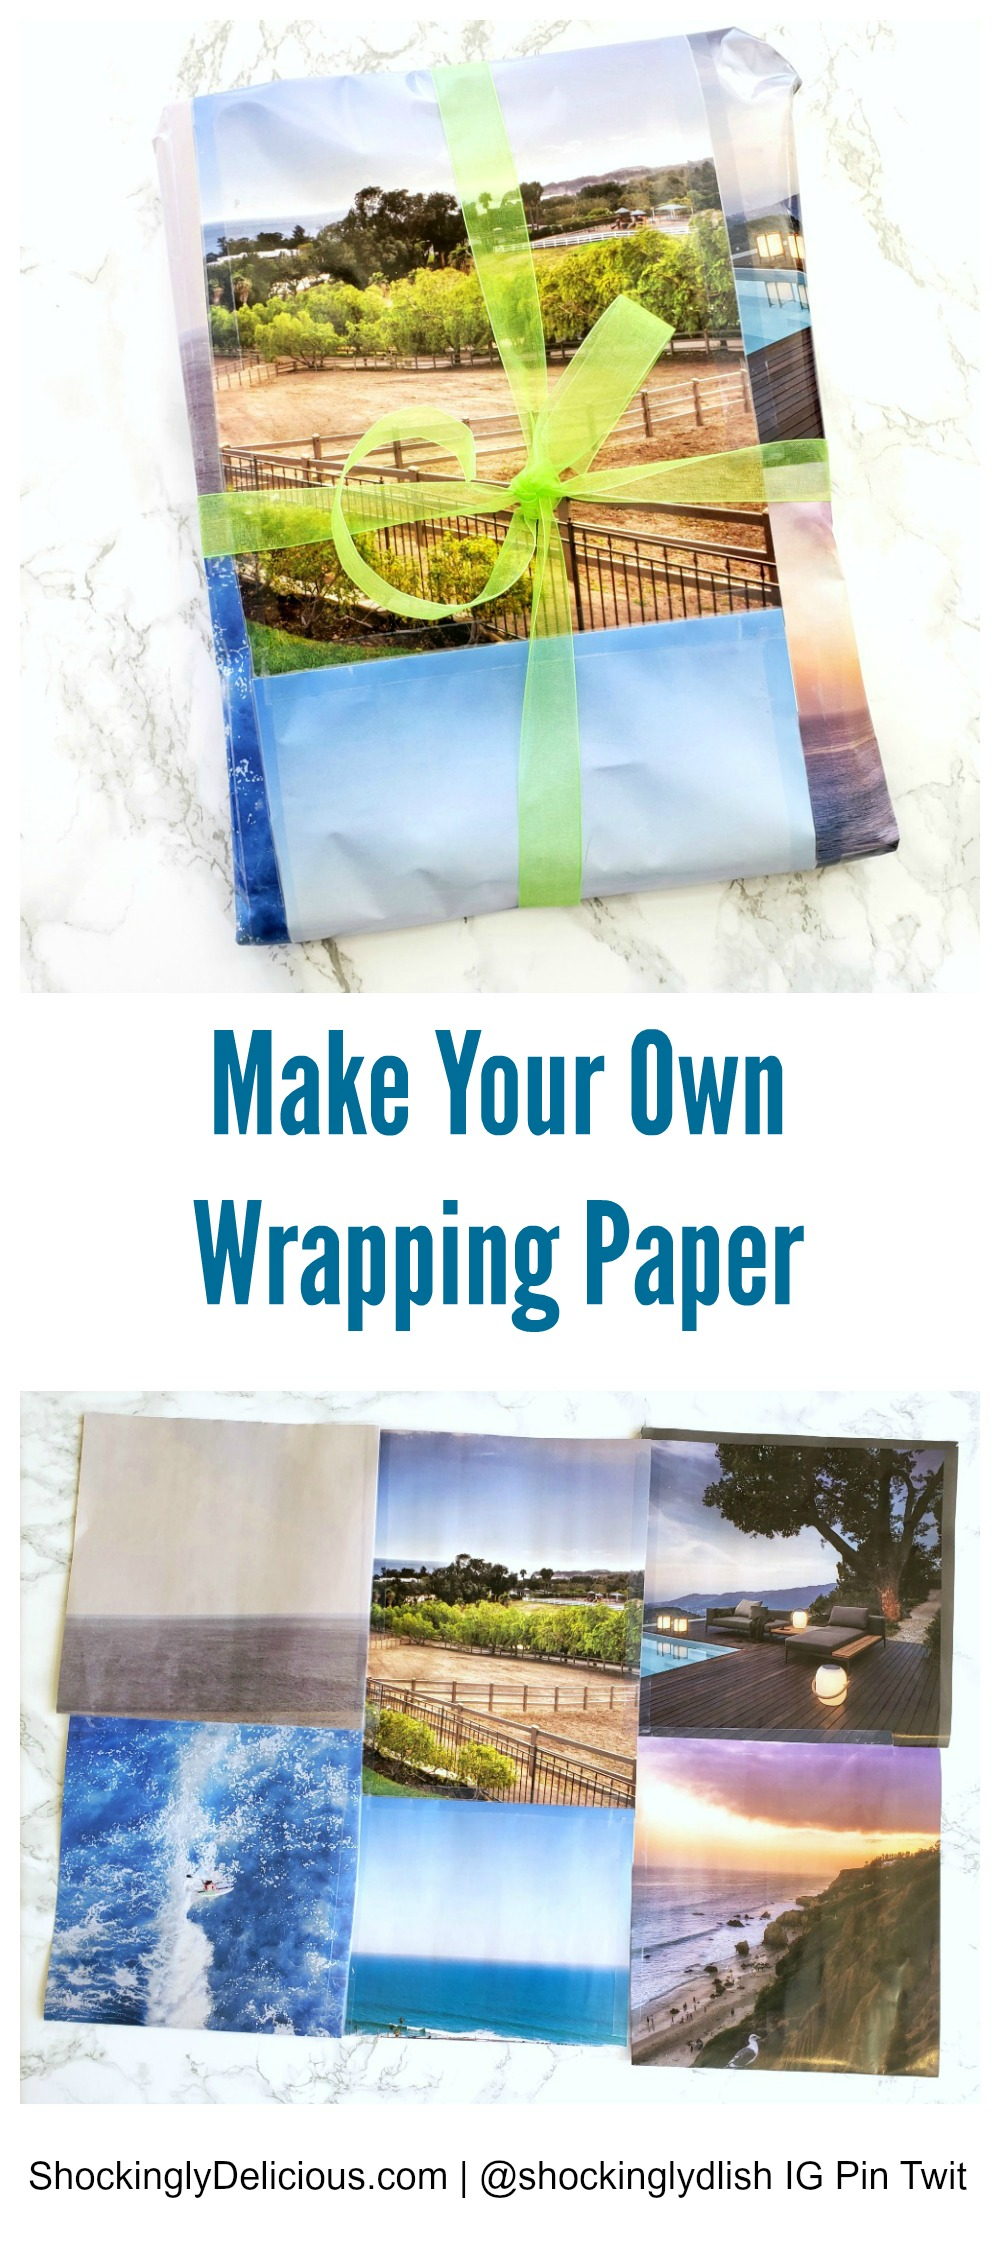 Make Your Own Wrapping Paper on ShockinglyDelicious.com